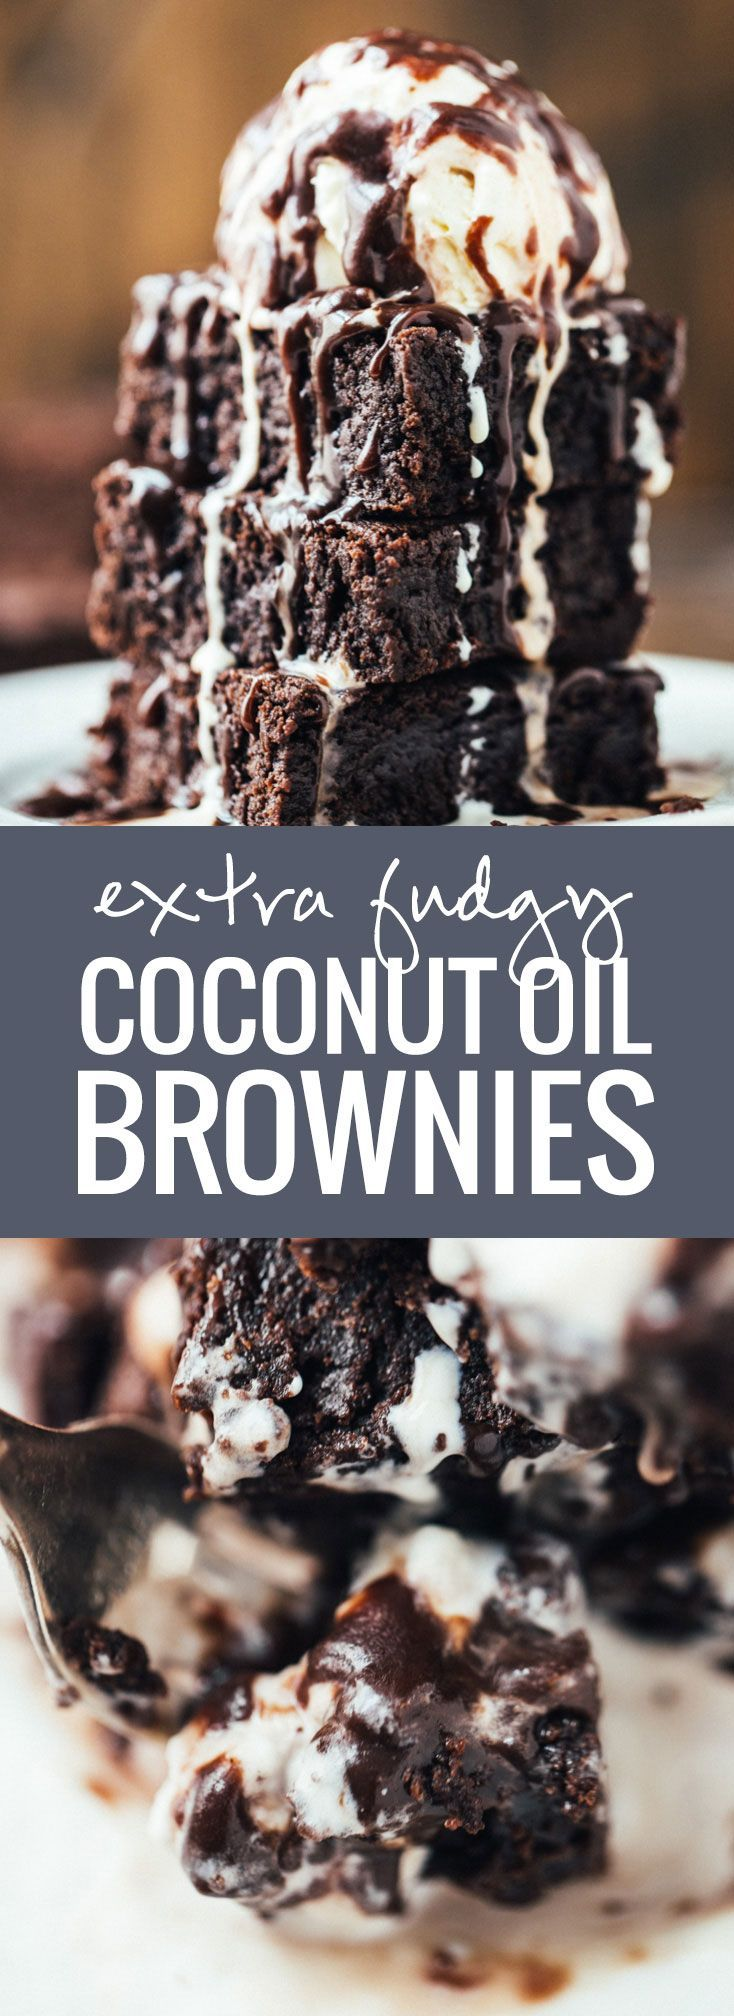 Extra Fudgy Coconut Oil Brownies - just a few simple high quality ingredients for the Most Fudgy brownies ever.